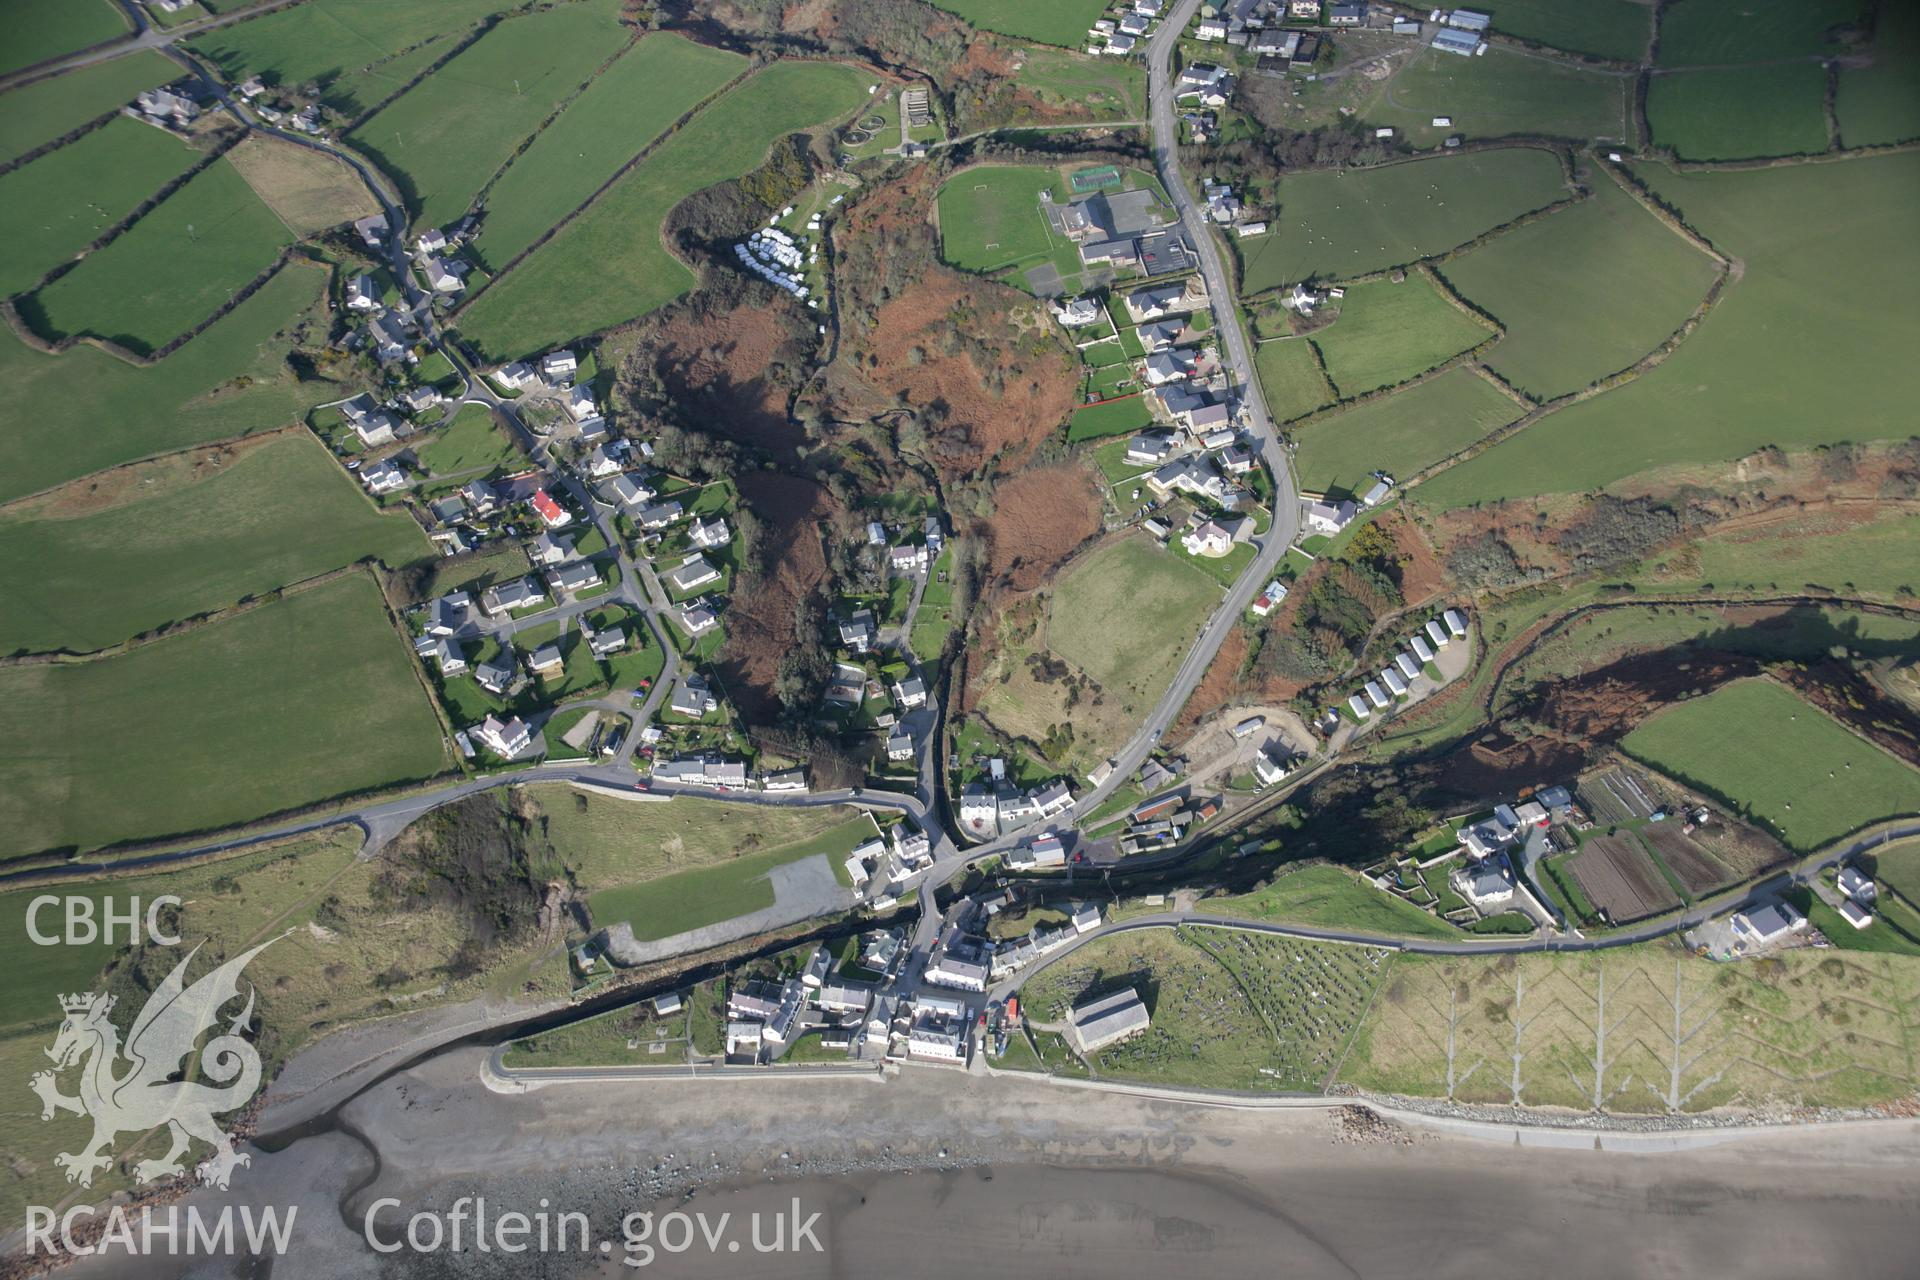 RCAHMW colour oblique aerial photograph of Aberdaron viewed from the south. Taken on 09 February 2006 by Toby Driver.